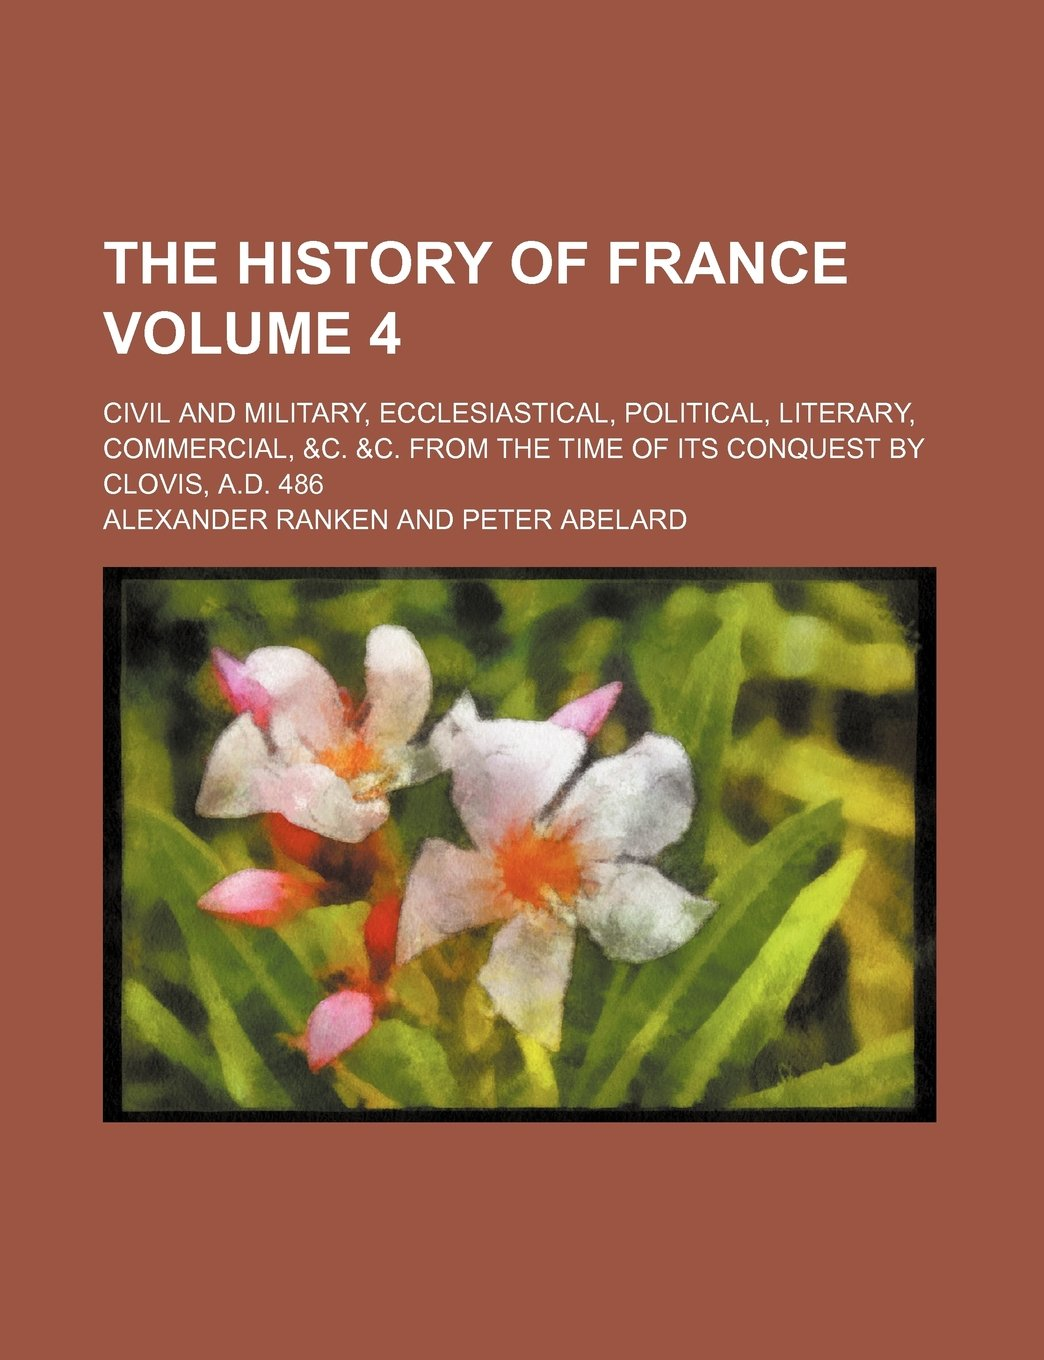 Download The history of France Volume 4; civil and military, ecclesiastical, political, literary, commercial, &c. &c. from the time of its conquest by Clovis, A.D. 486 pdf